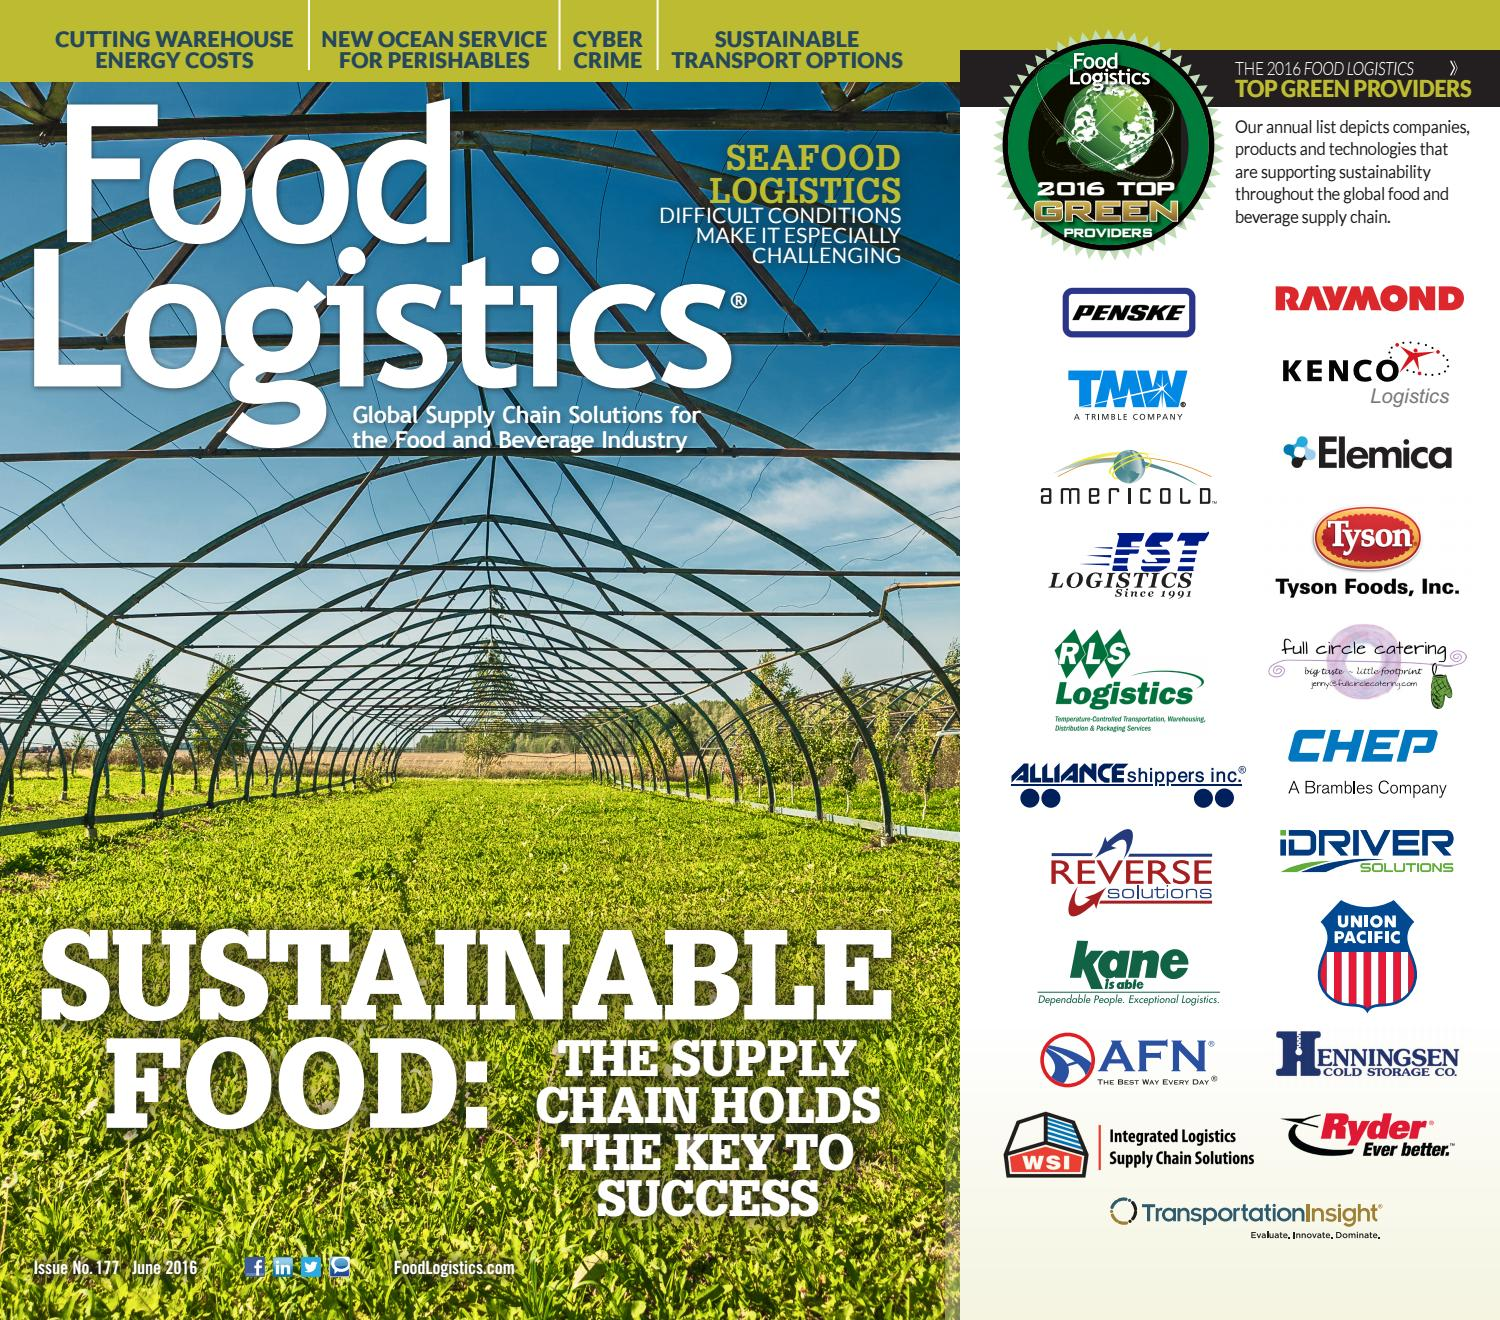 Food Logistics June 2016 by Supply+Demand Chain/Food Logistics - issuu